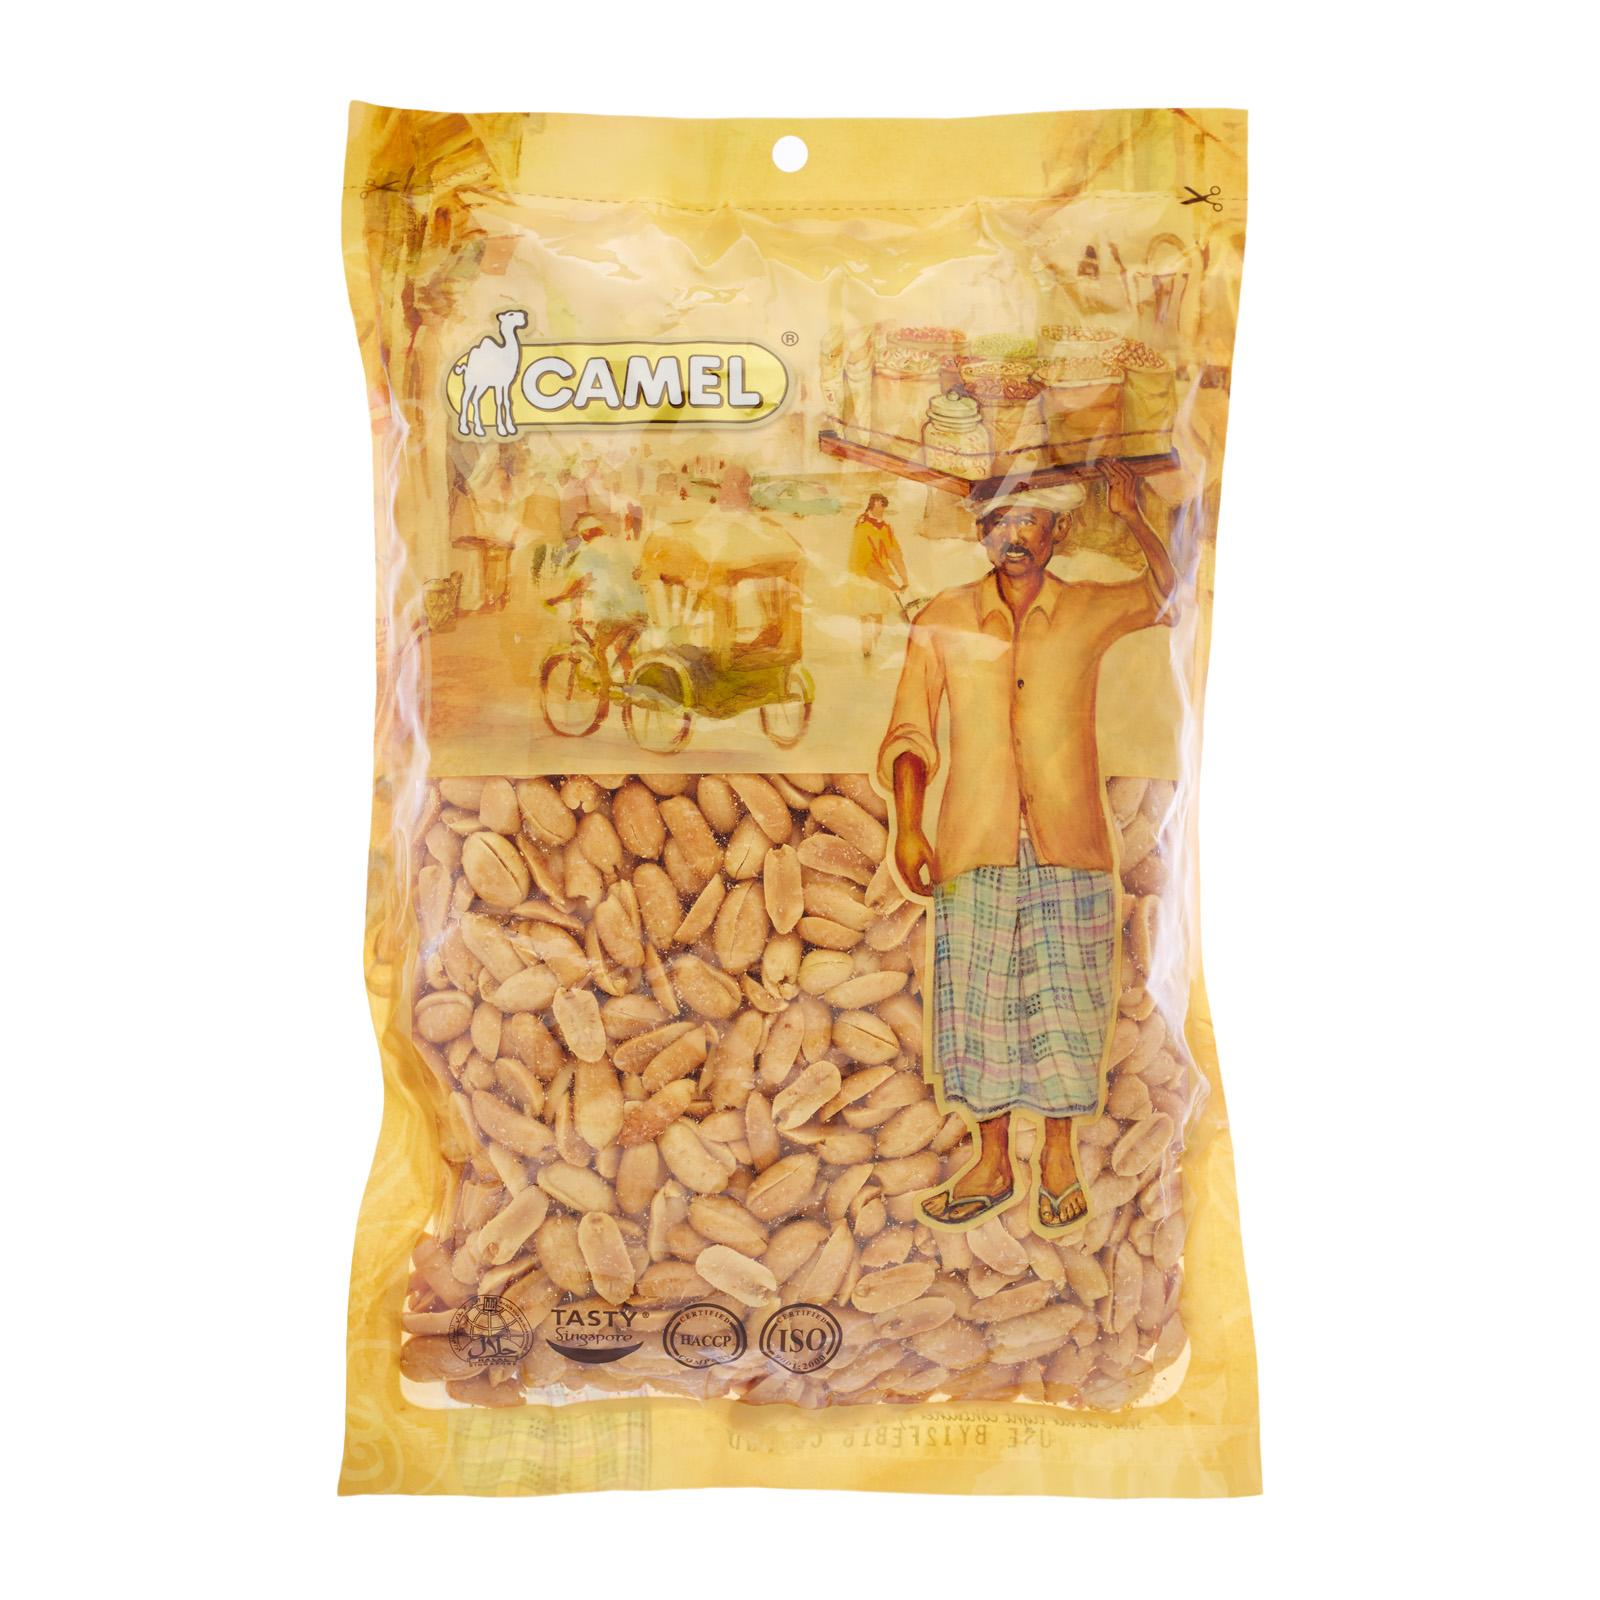 Camel Roasted Peanuts